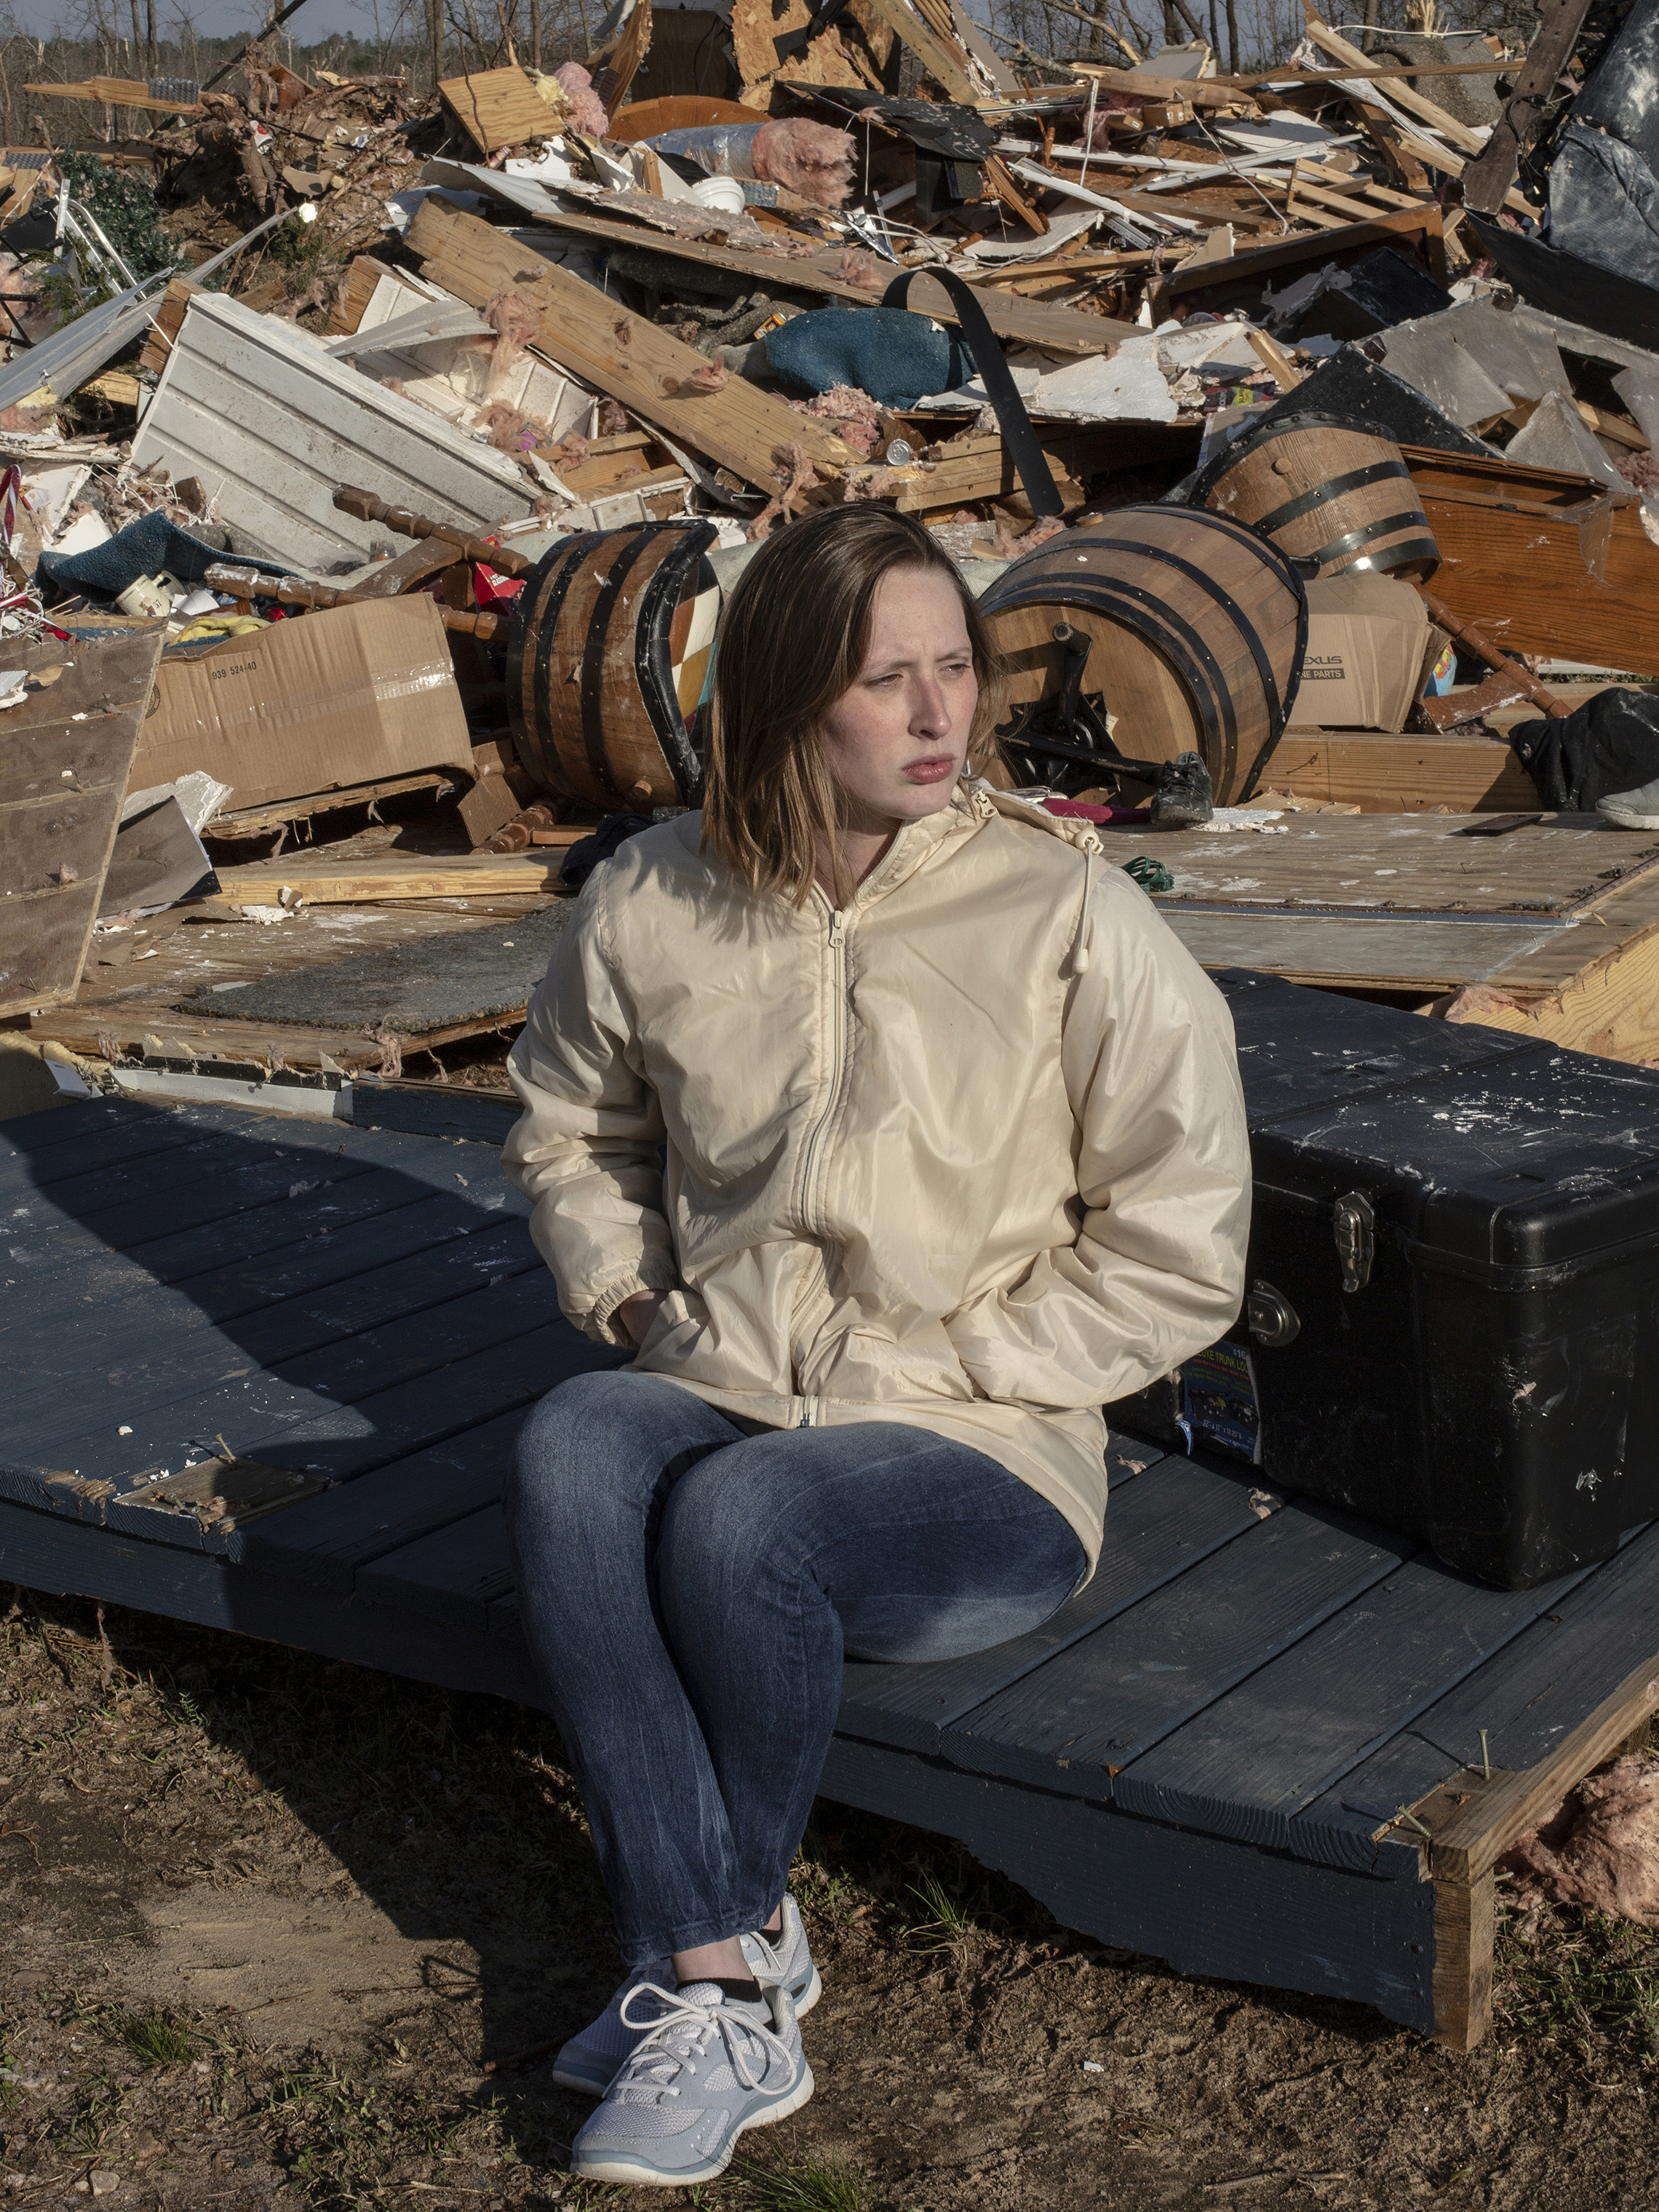 Jessica Chandler poses for a portrait in her neighborhood, which was destroyed after a tornado passed over killing 23 people and destroying homes in Beauregard, Alabama on March 4, 2019.